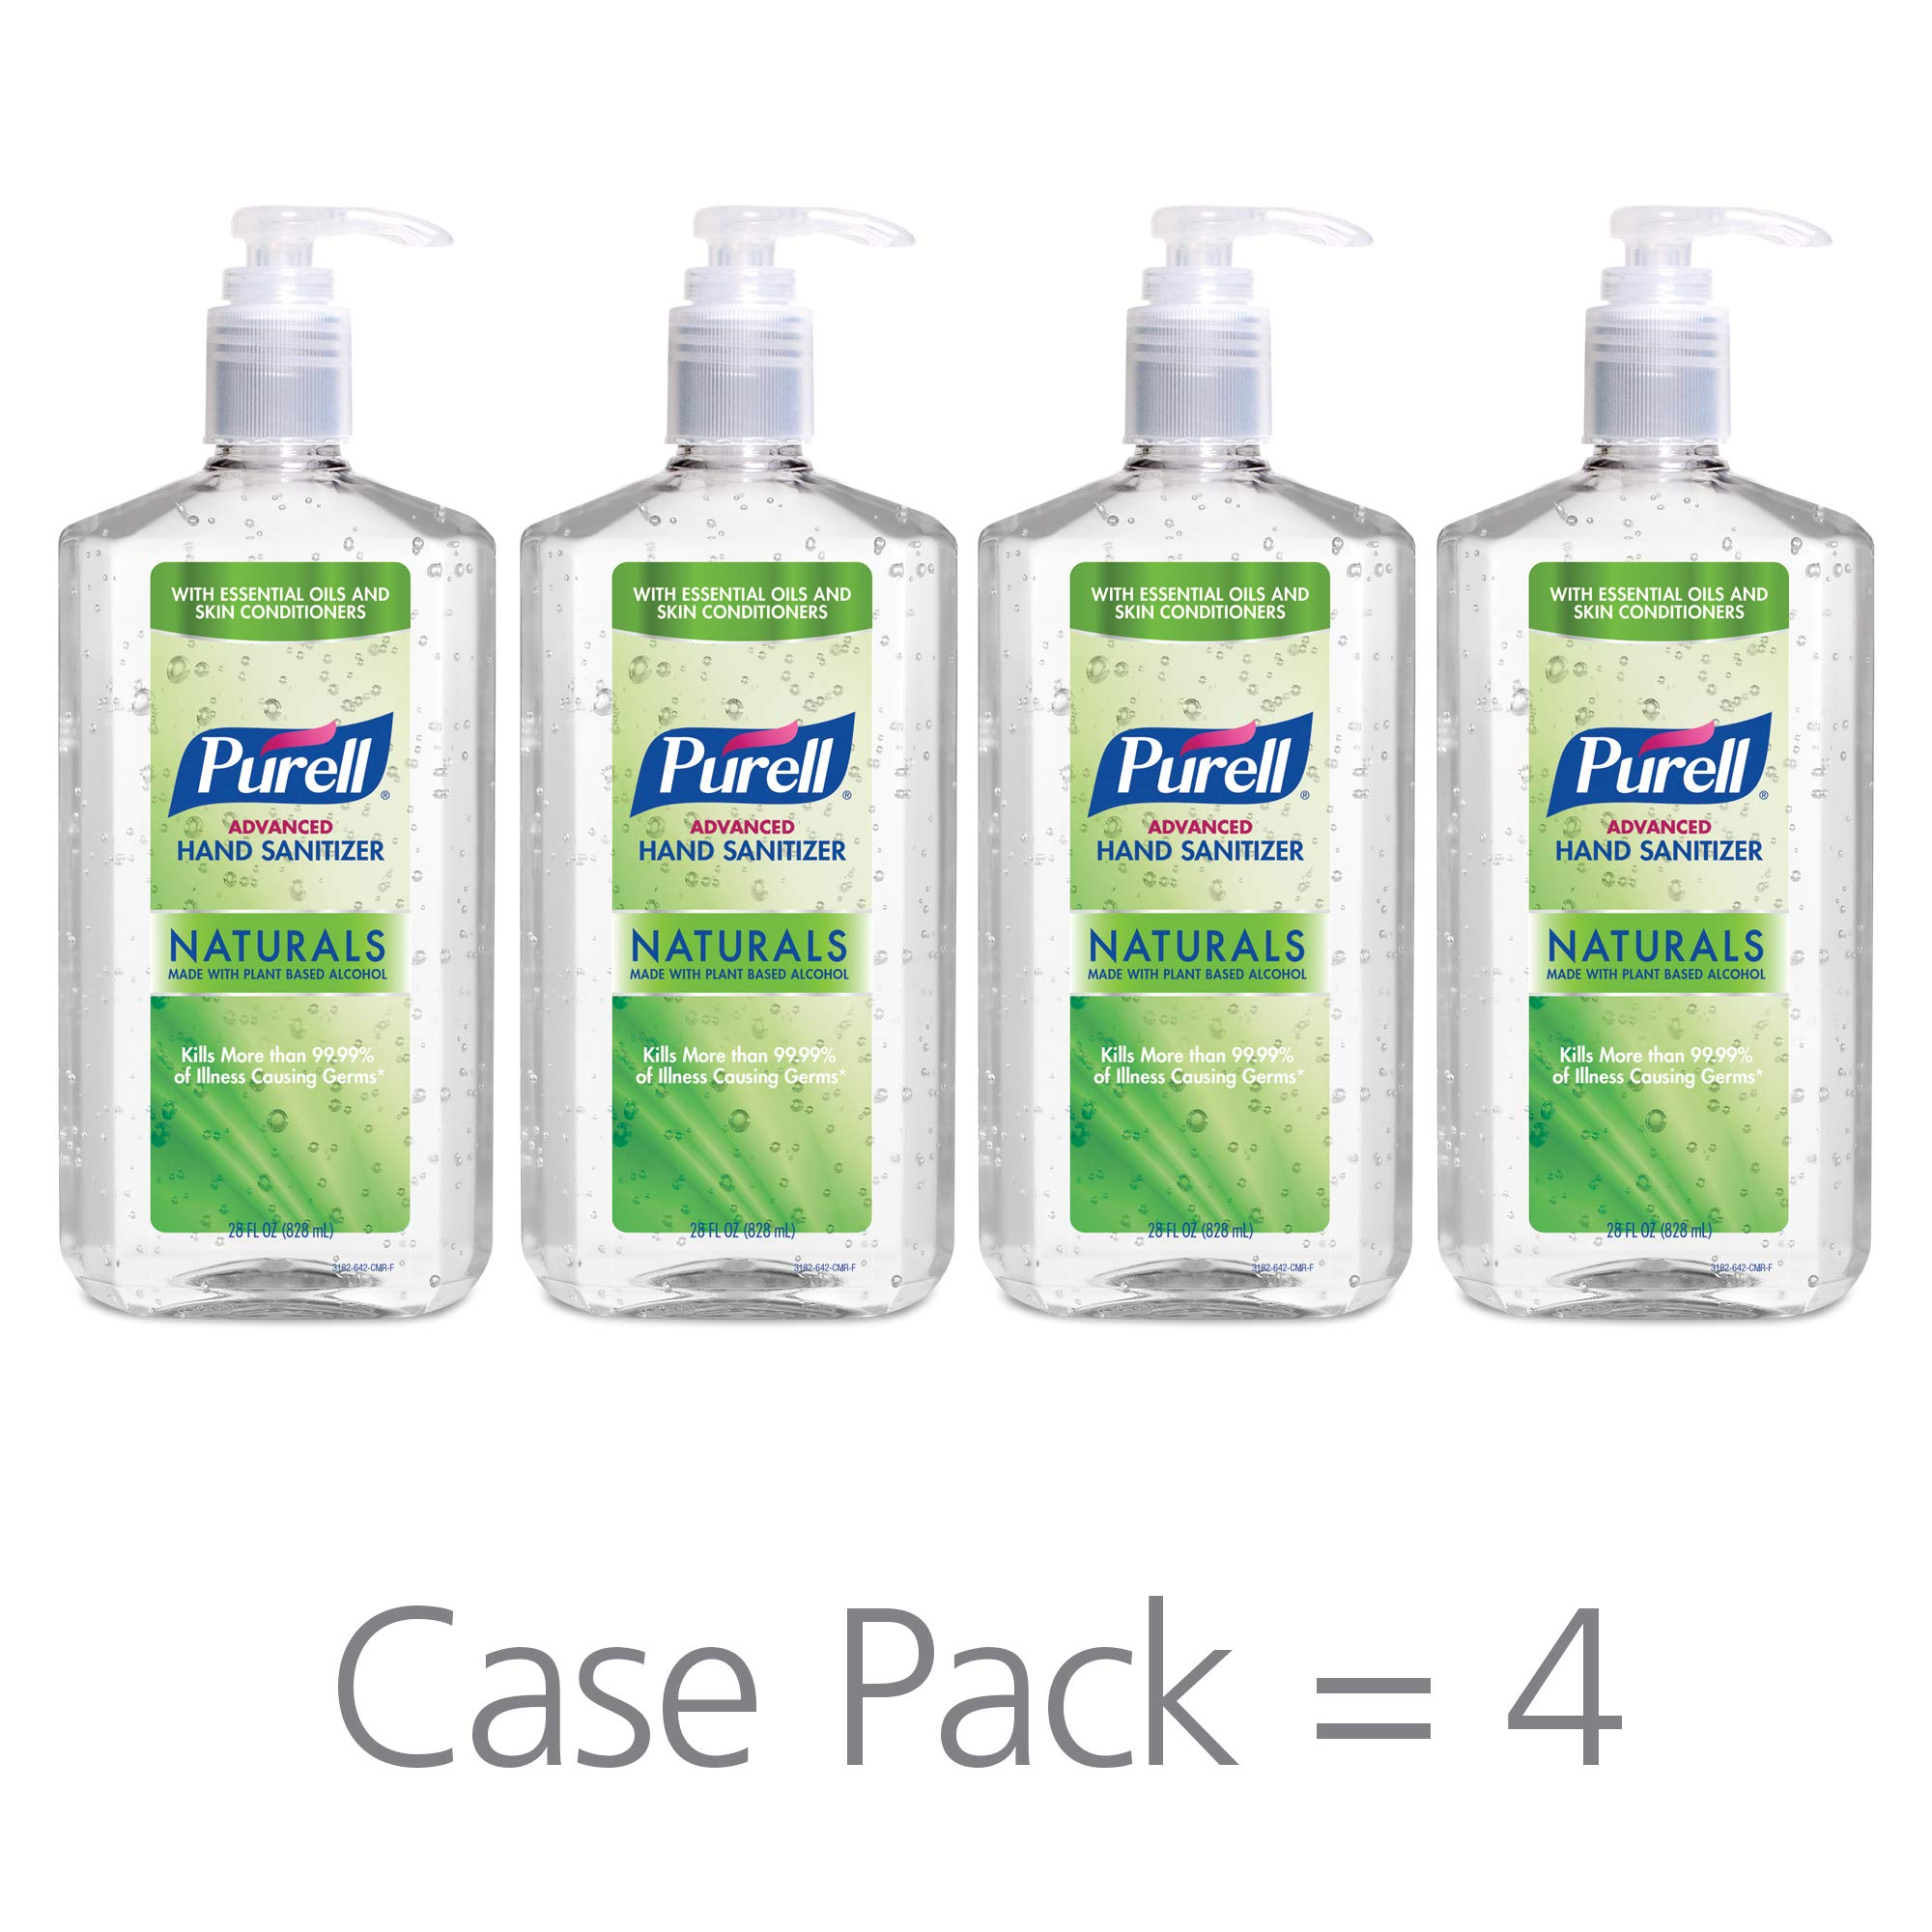 PURELL Advanced Hand Sanitizer Naturals with Plant Based Alcohol, Citrus Scent, 28 fl oz Pump Bottle (Pack of 4) - 3182-04-CMR by Purell